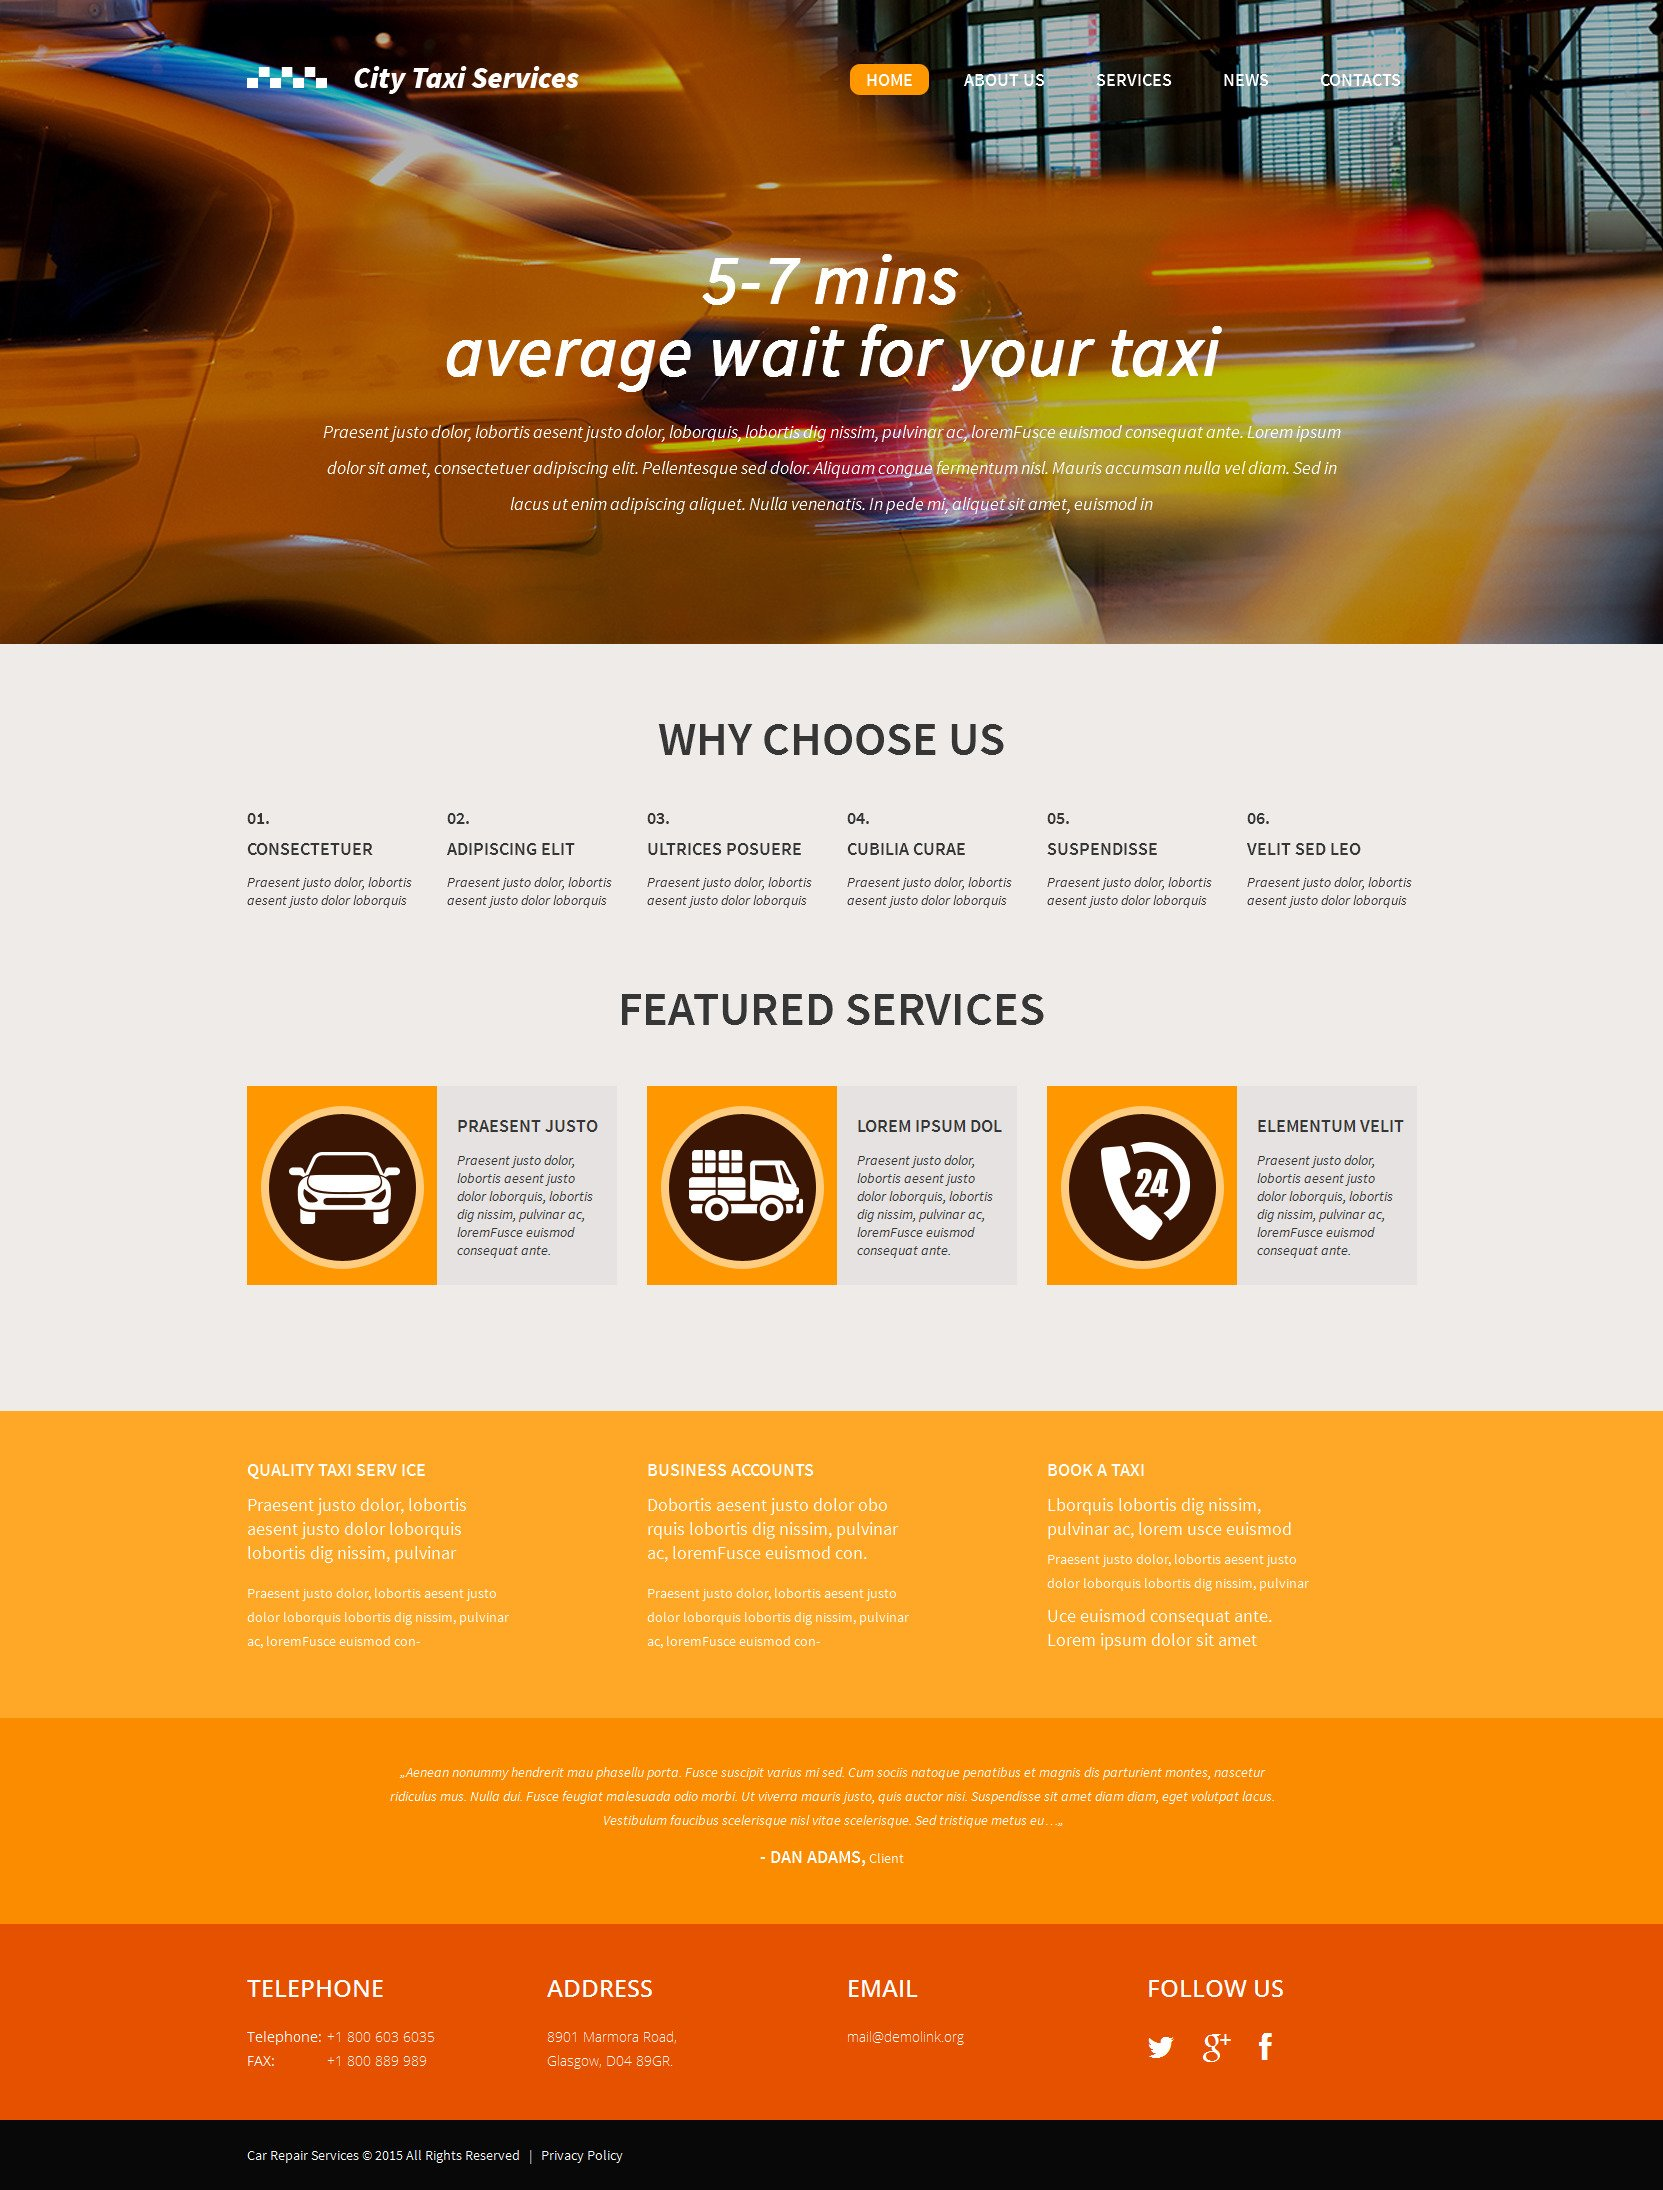 The Taxi Services Company WordPress Design 53299, one of the best WordPress themes of its kind (business, most popular), also known as taxi services company WordPress template, cab WordPress template, car WordPress template, city WordPress template, time WordPress template, fast WordPress template, speed WordPress template, driver WordPress template, trip WordPress template, safety WordPress template, need WordPress template, urgent WordPress template, stop transport WordPress template, journey WordPress template, phone and related with taxi services company, cab, car, city, time, fast, speed, driver, trip, safety, need, urgent, stop transport, journey, phone, etc.